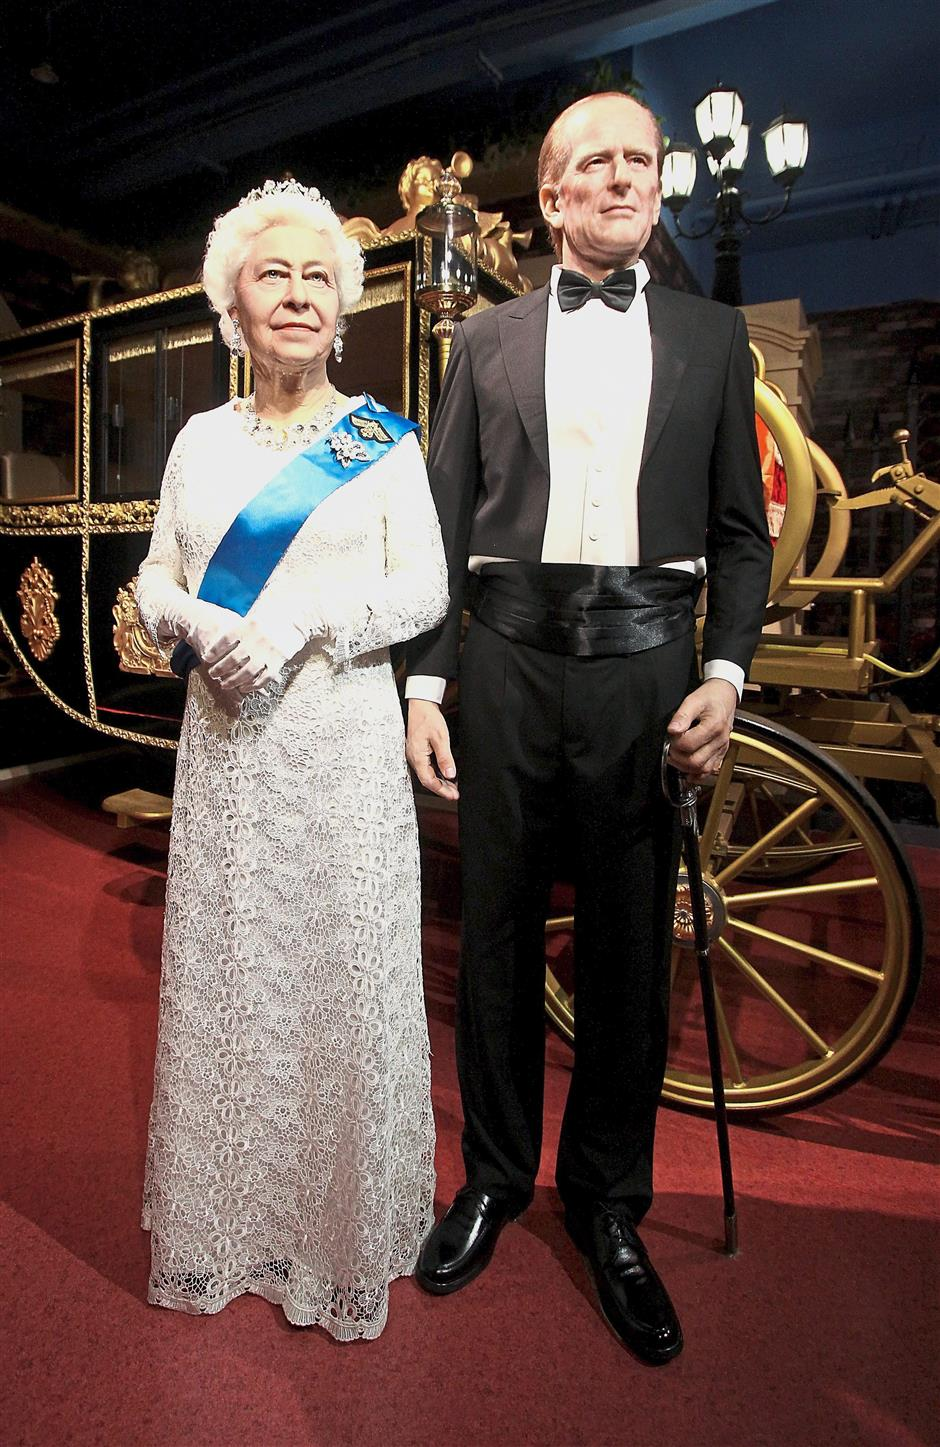 Queen Elizabeth and Prince Philip wax models at i-City's Red Carpet 2.